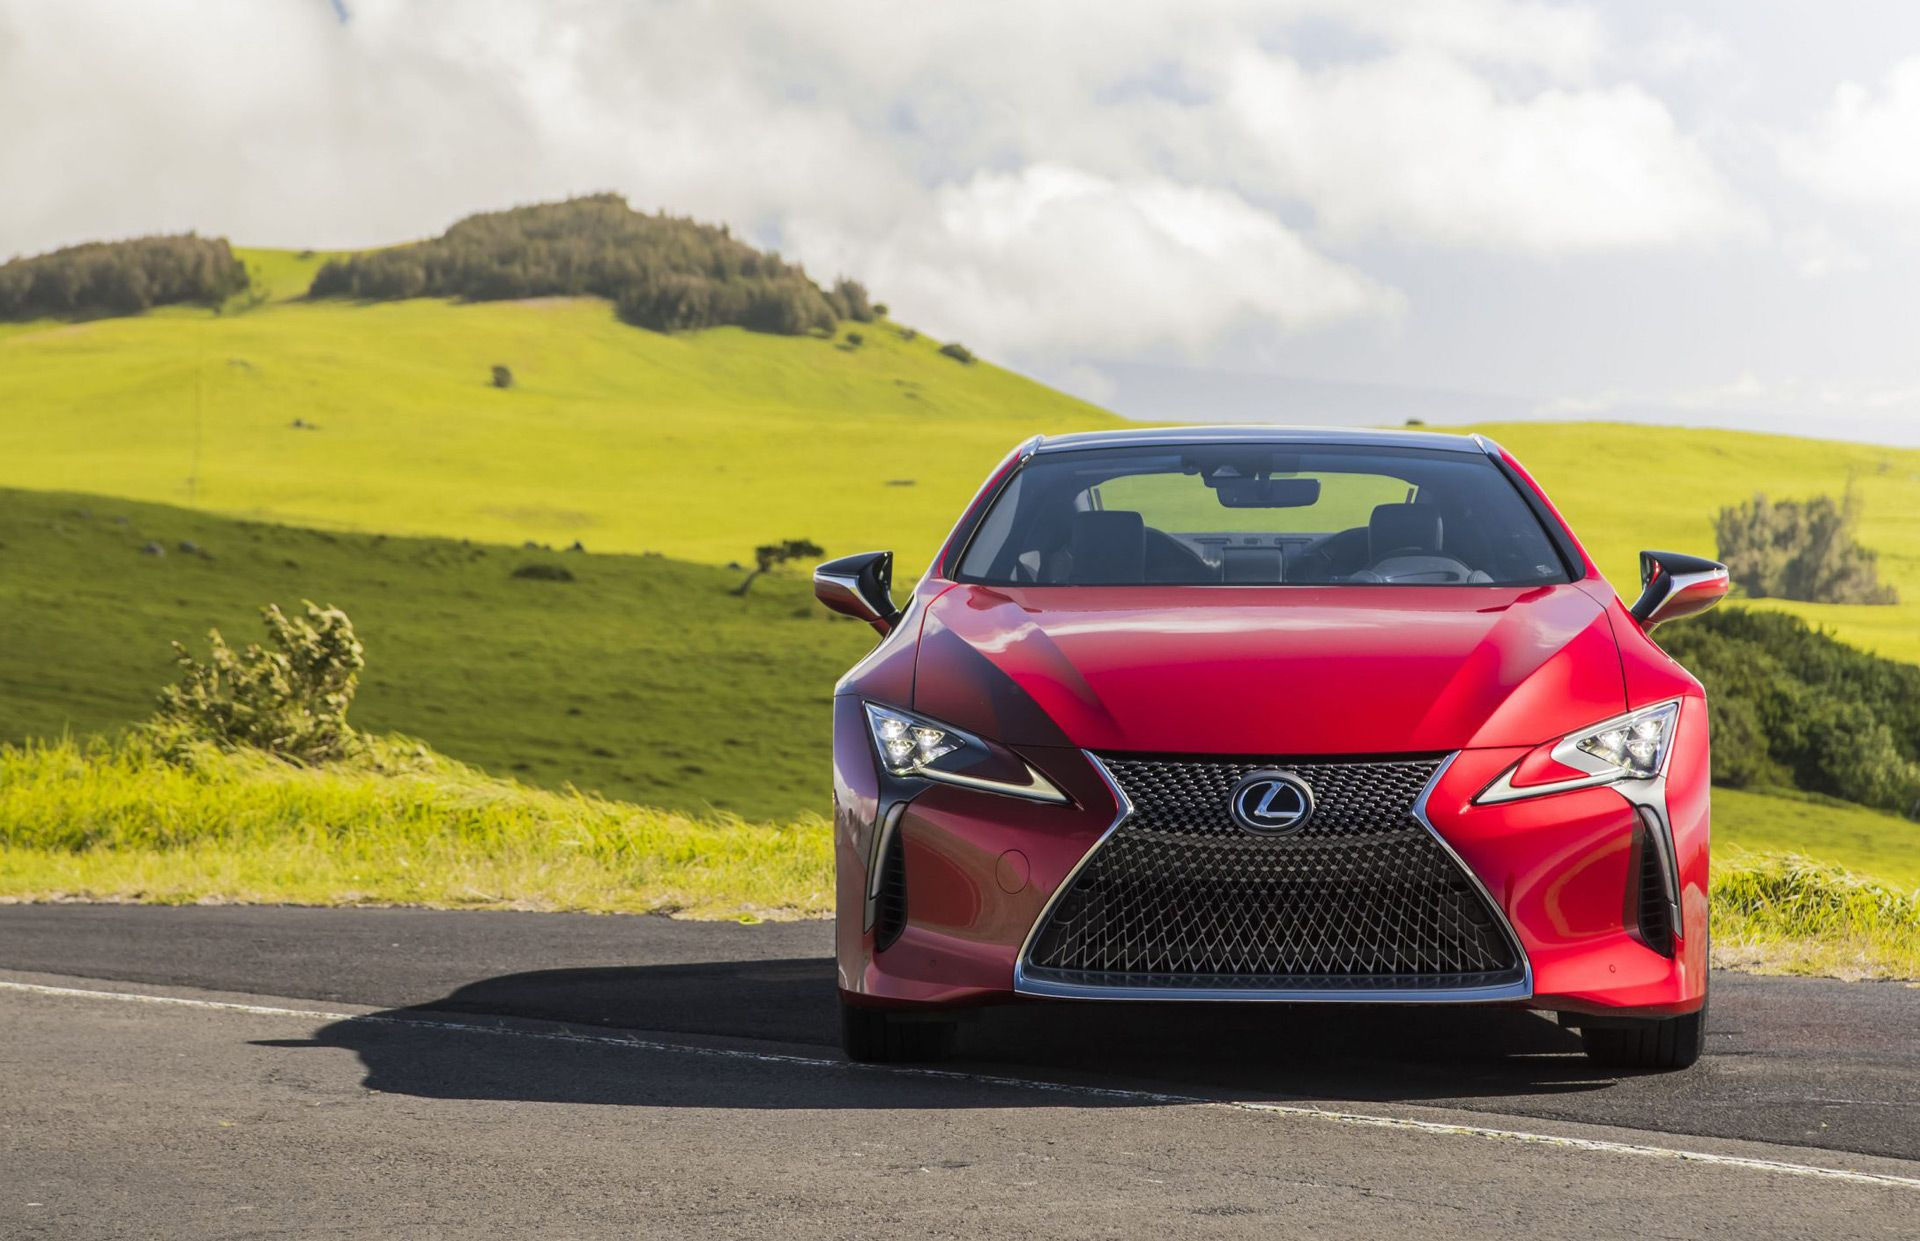 2021 Lexus Lc Preview Less Weight A Convertible But Still No Lc F In 2020 Lexus Lc Lexus Cycling City